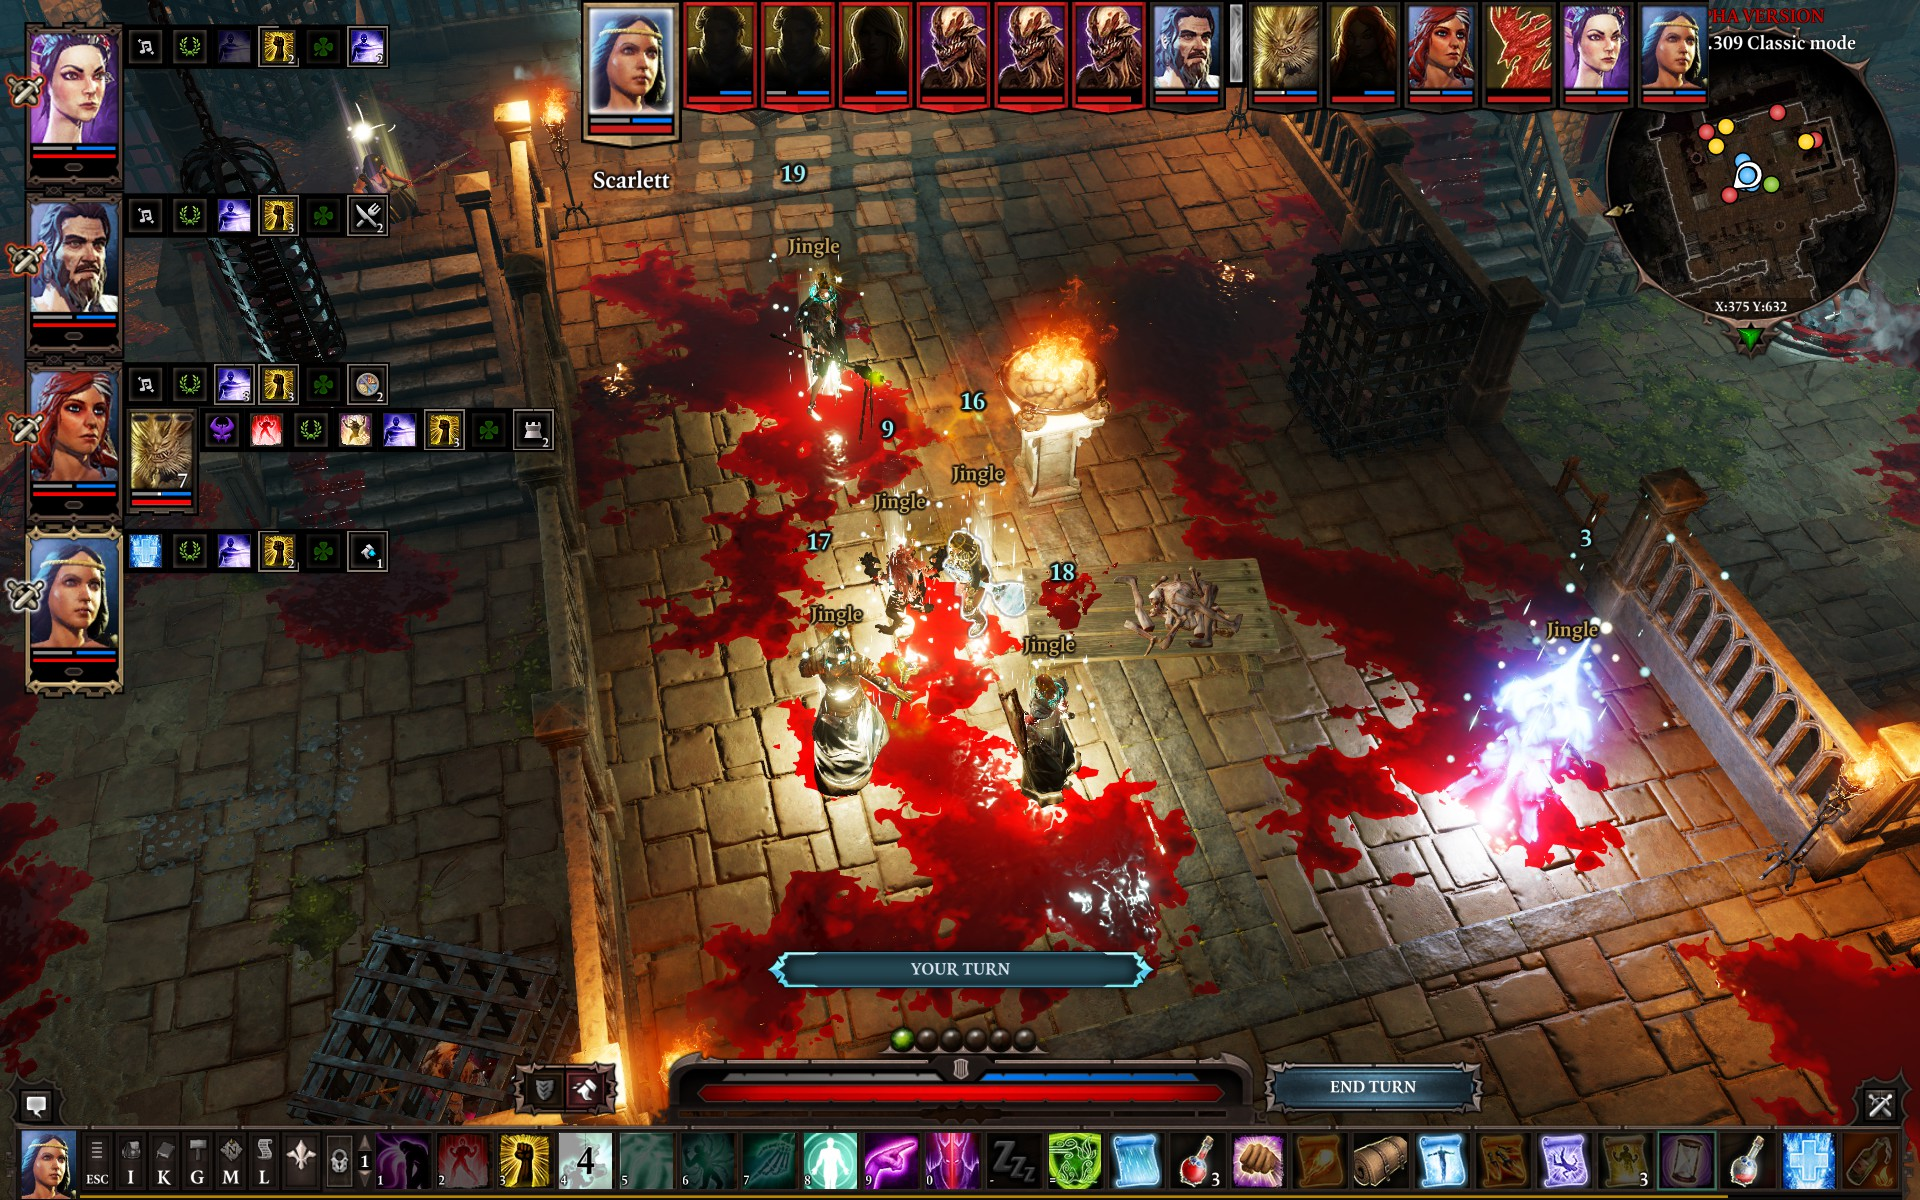 Divinity: Original Sin 2 - How To Use Steam Workshop Mods